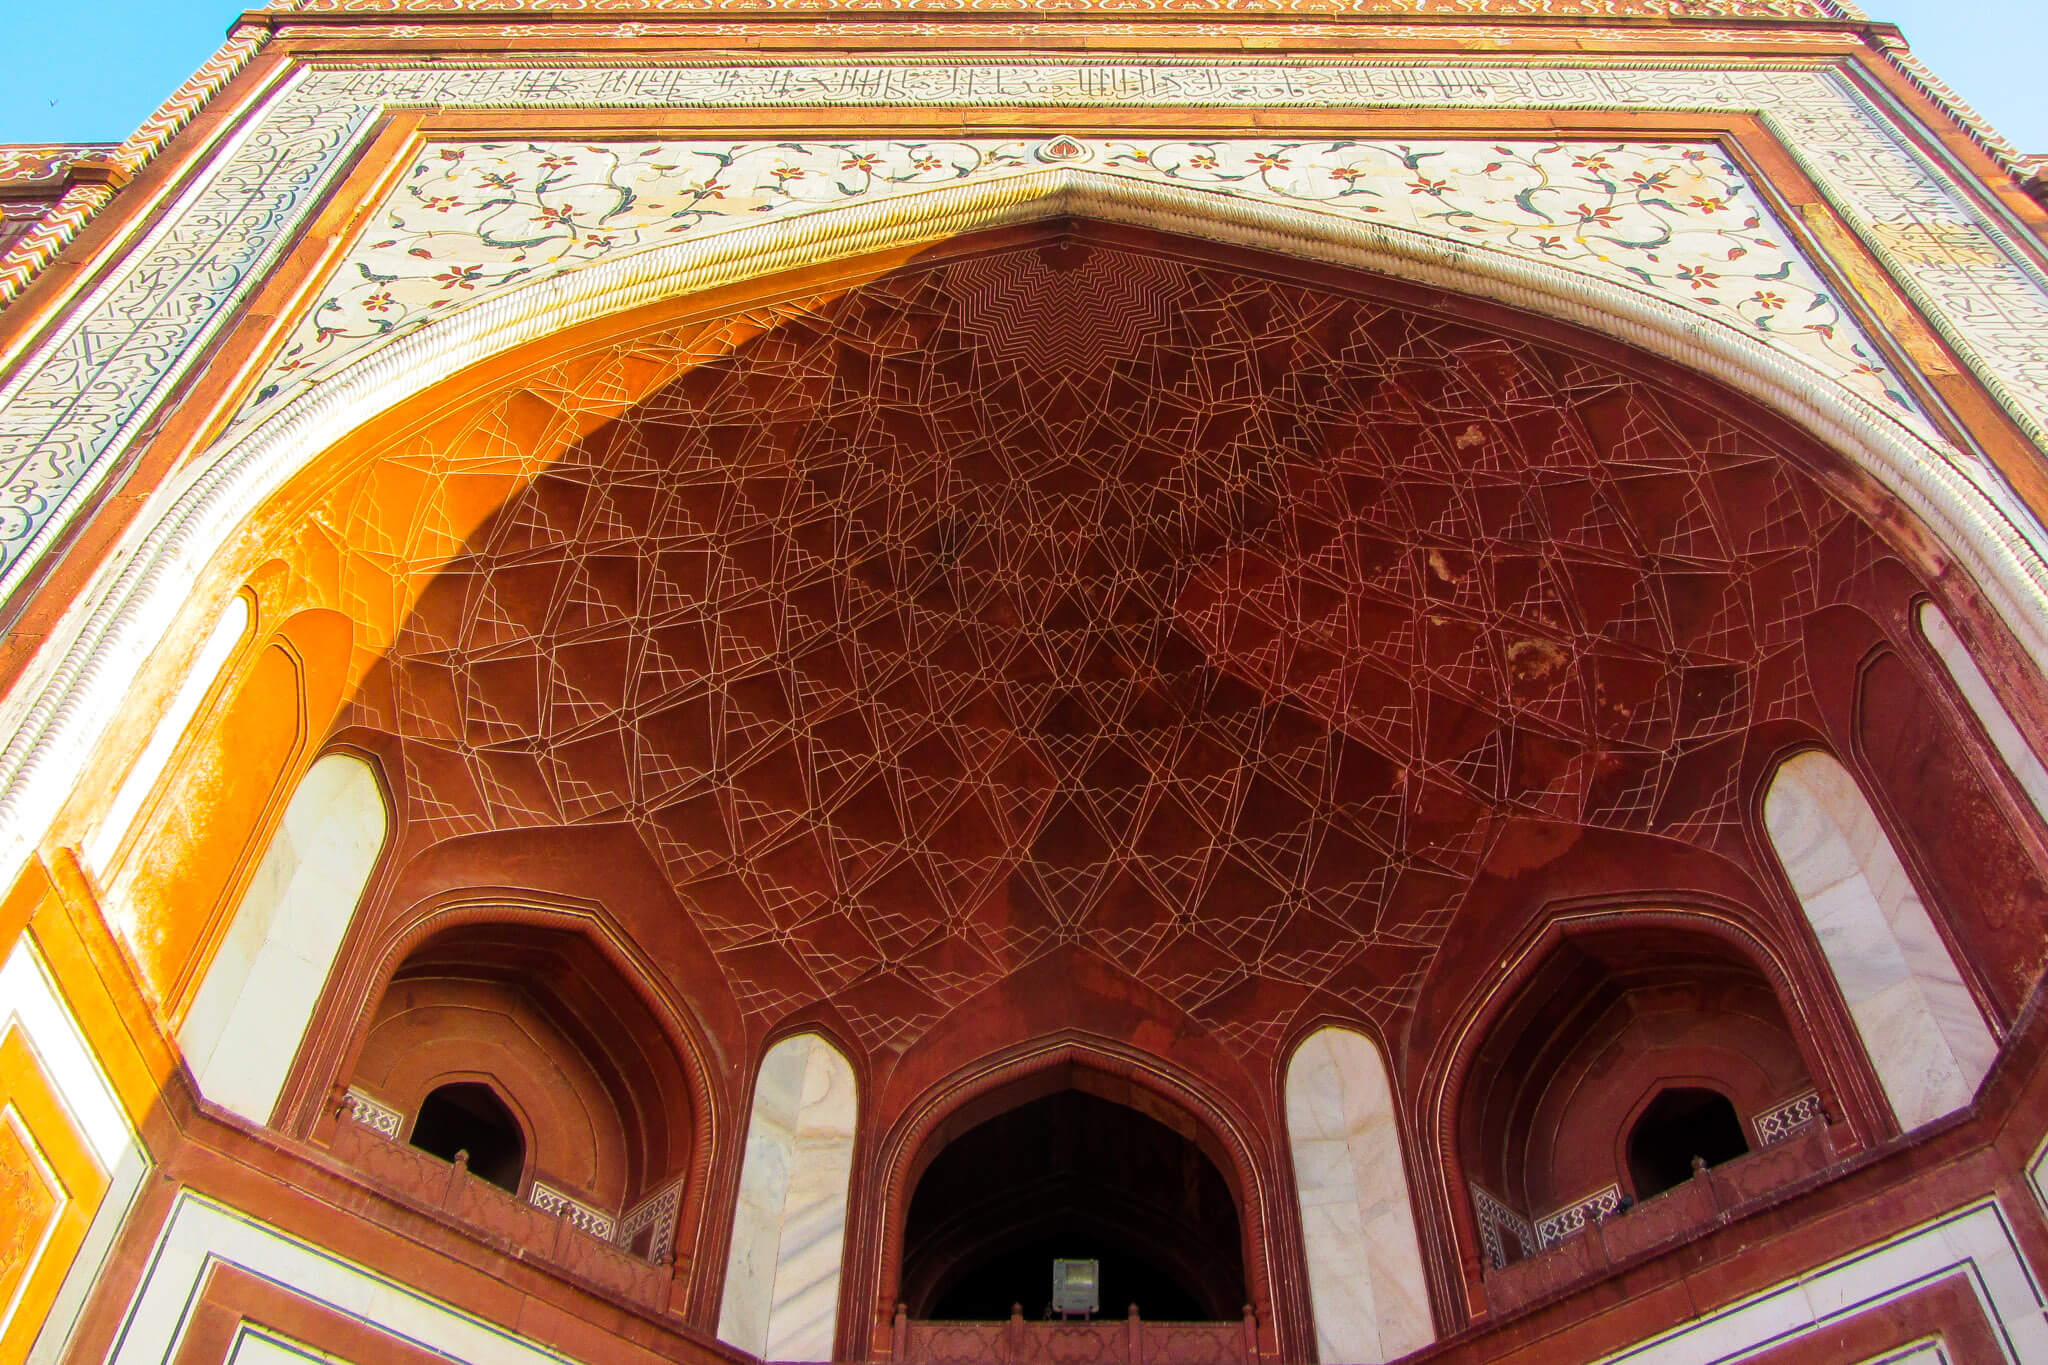 The Mughal architecture of India